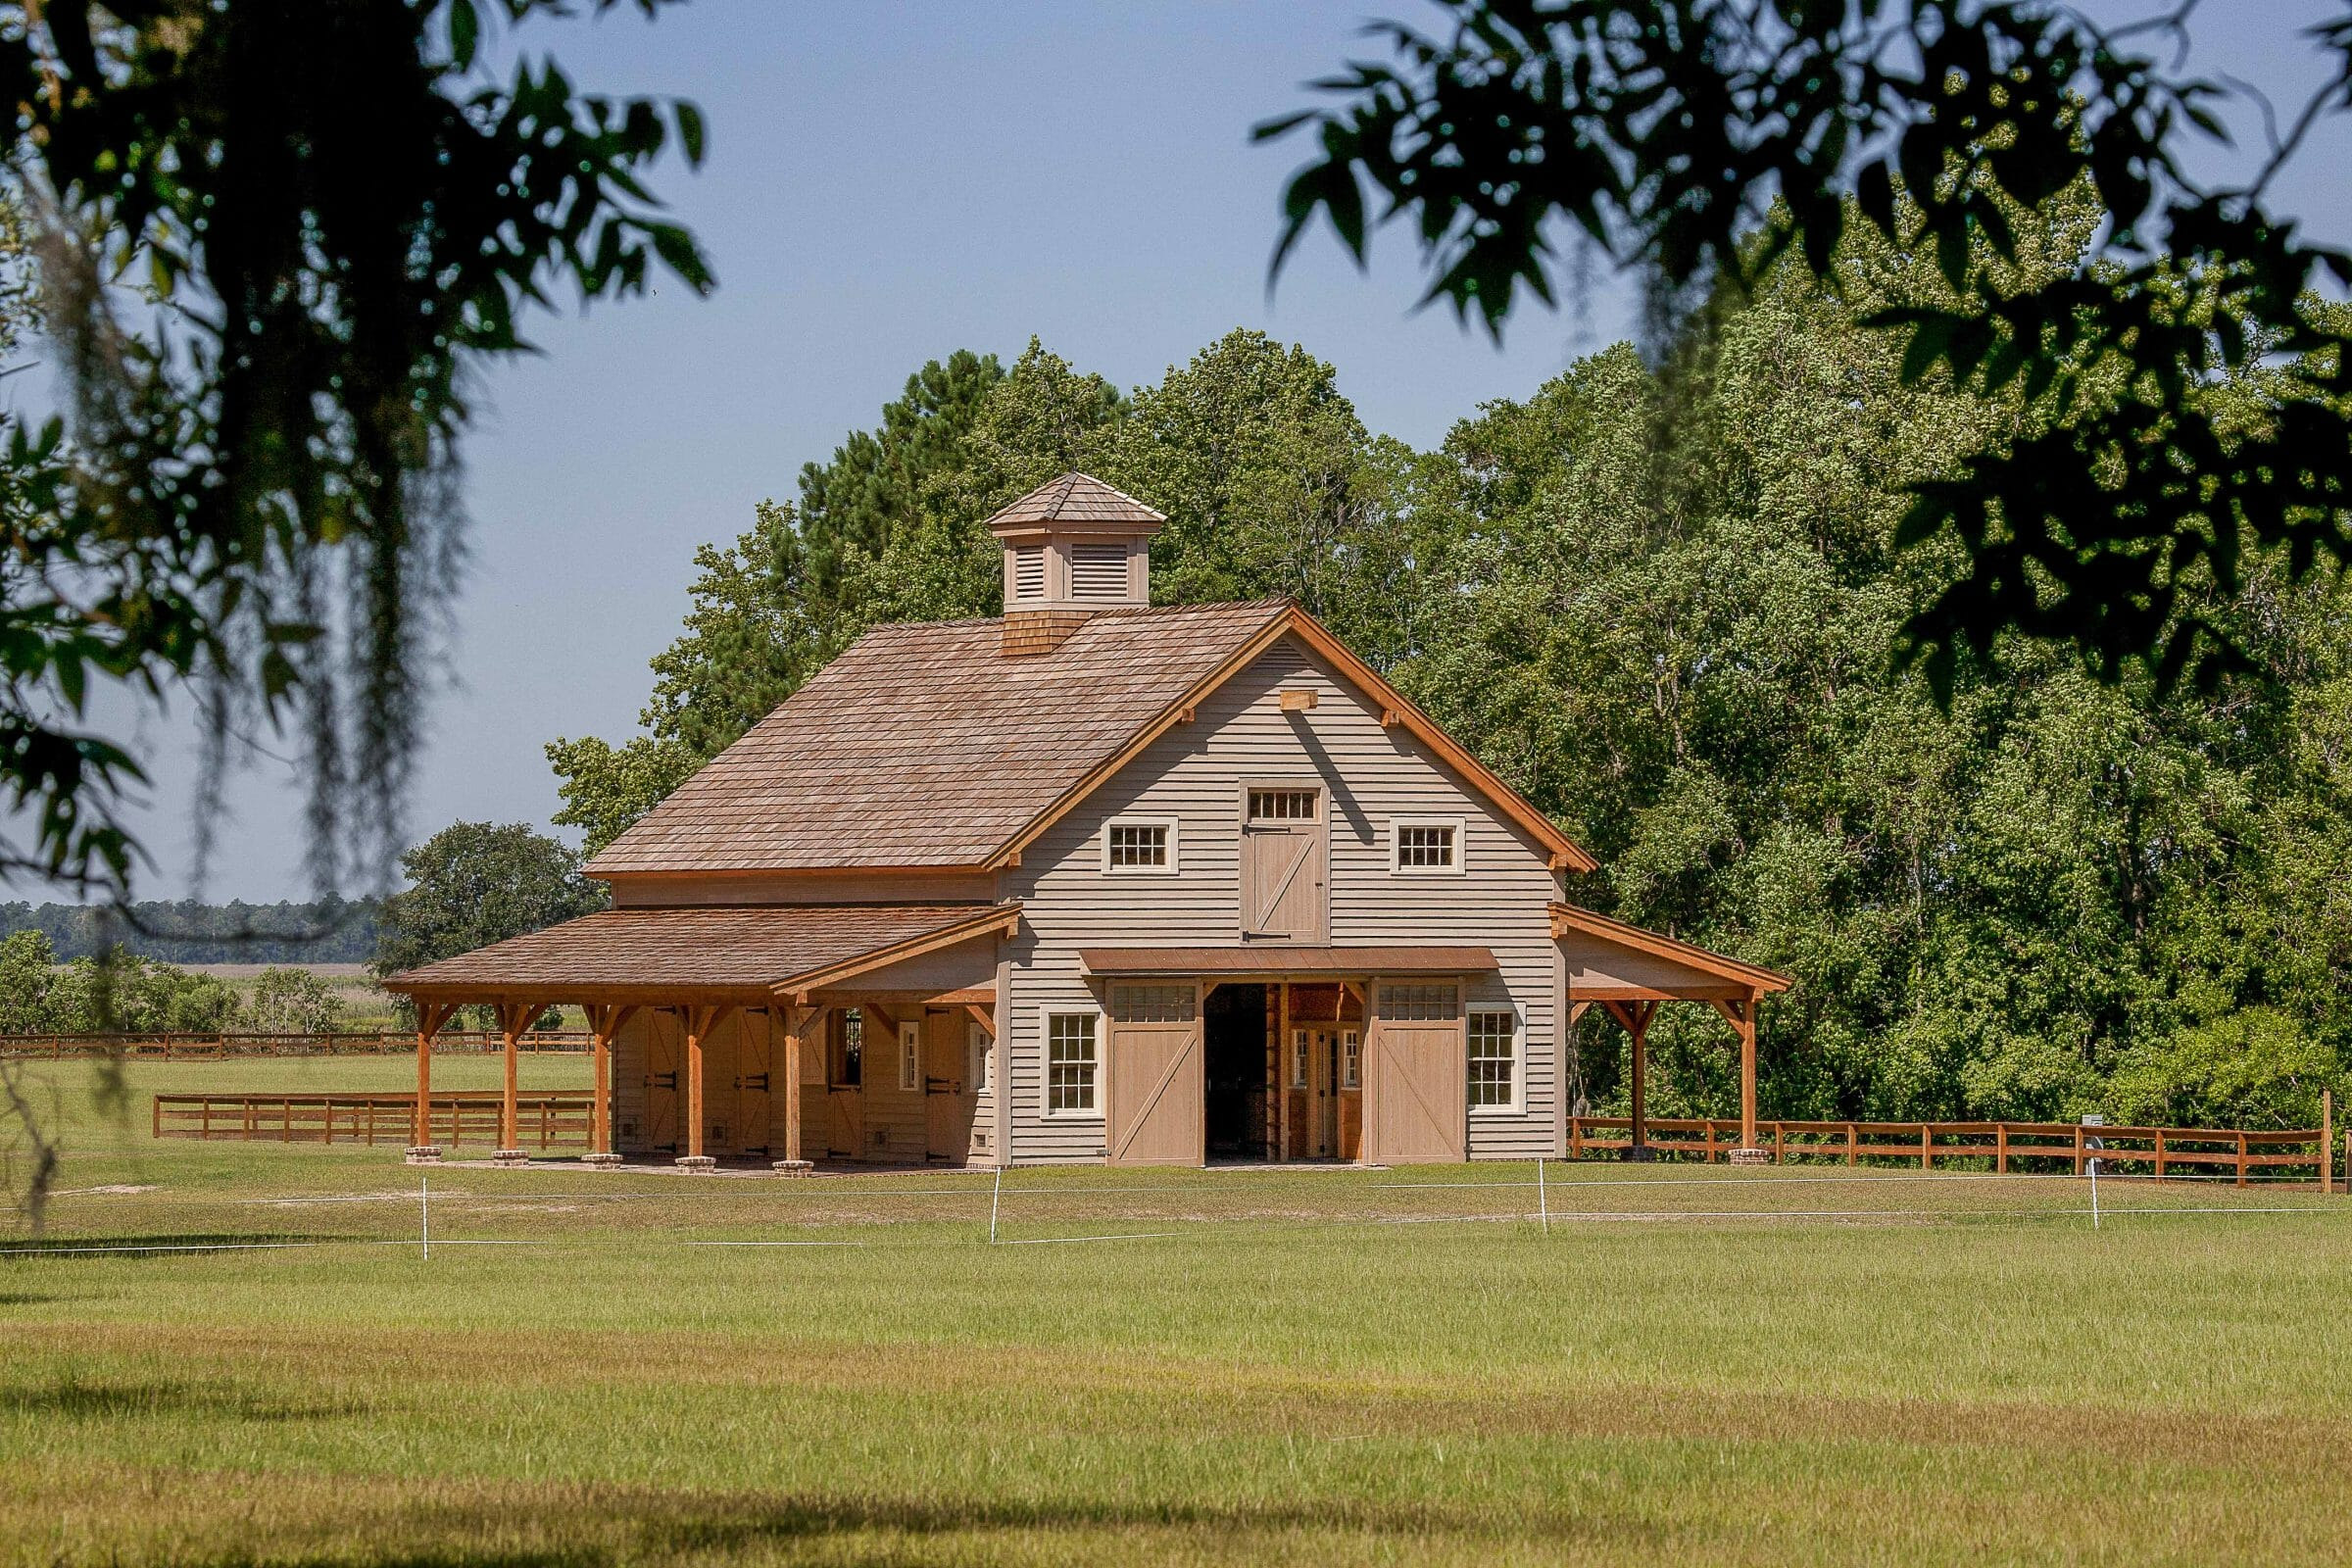 Carolina Horse Barn Handcrafted Timber Stable Vermont Timber Works